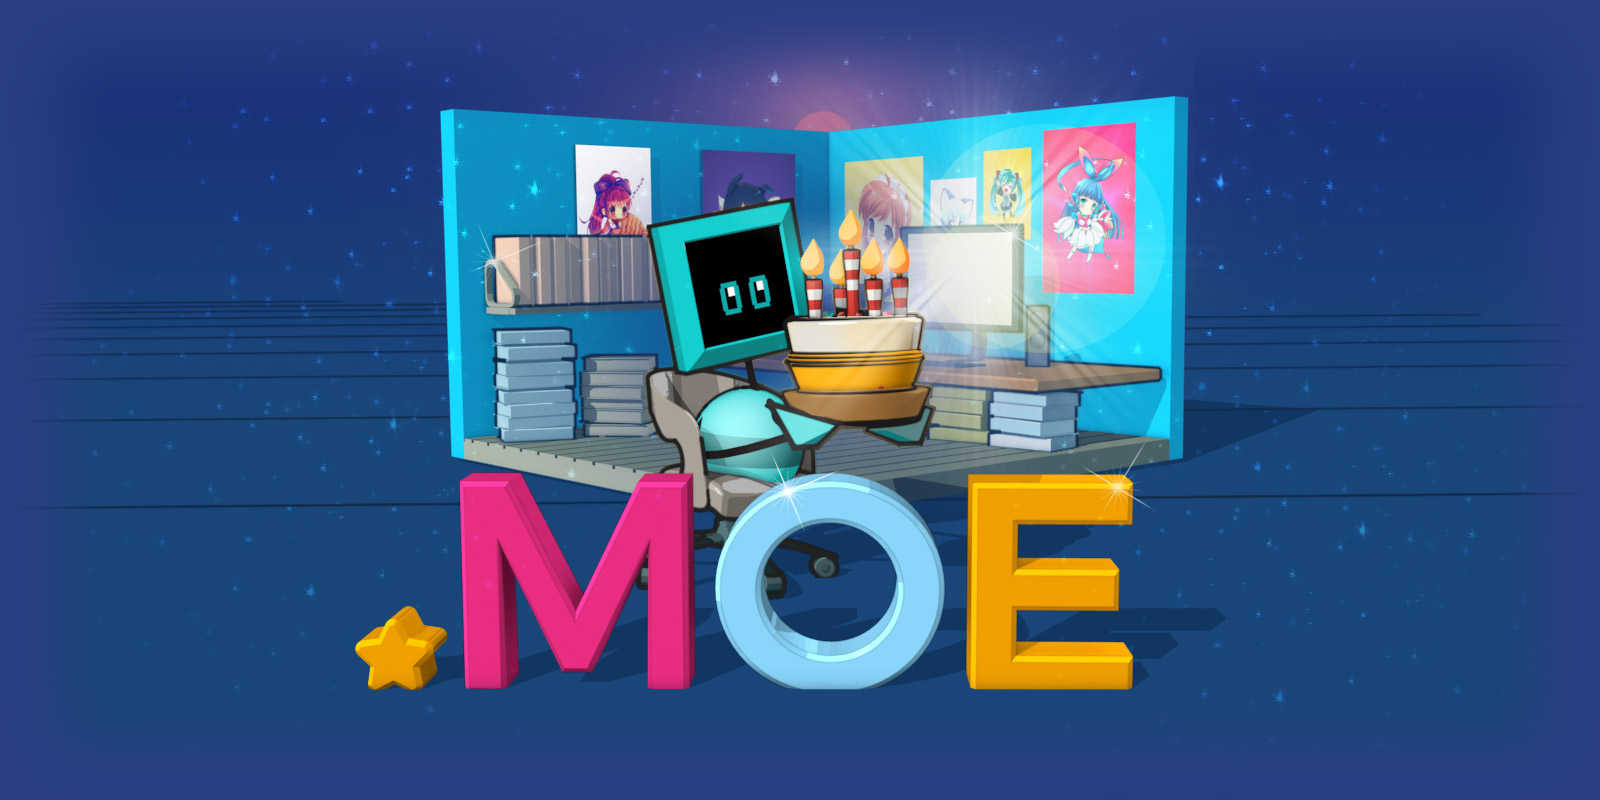 Half-price on .moe in celebration of 5th anniversary